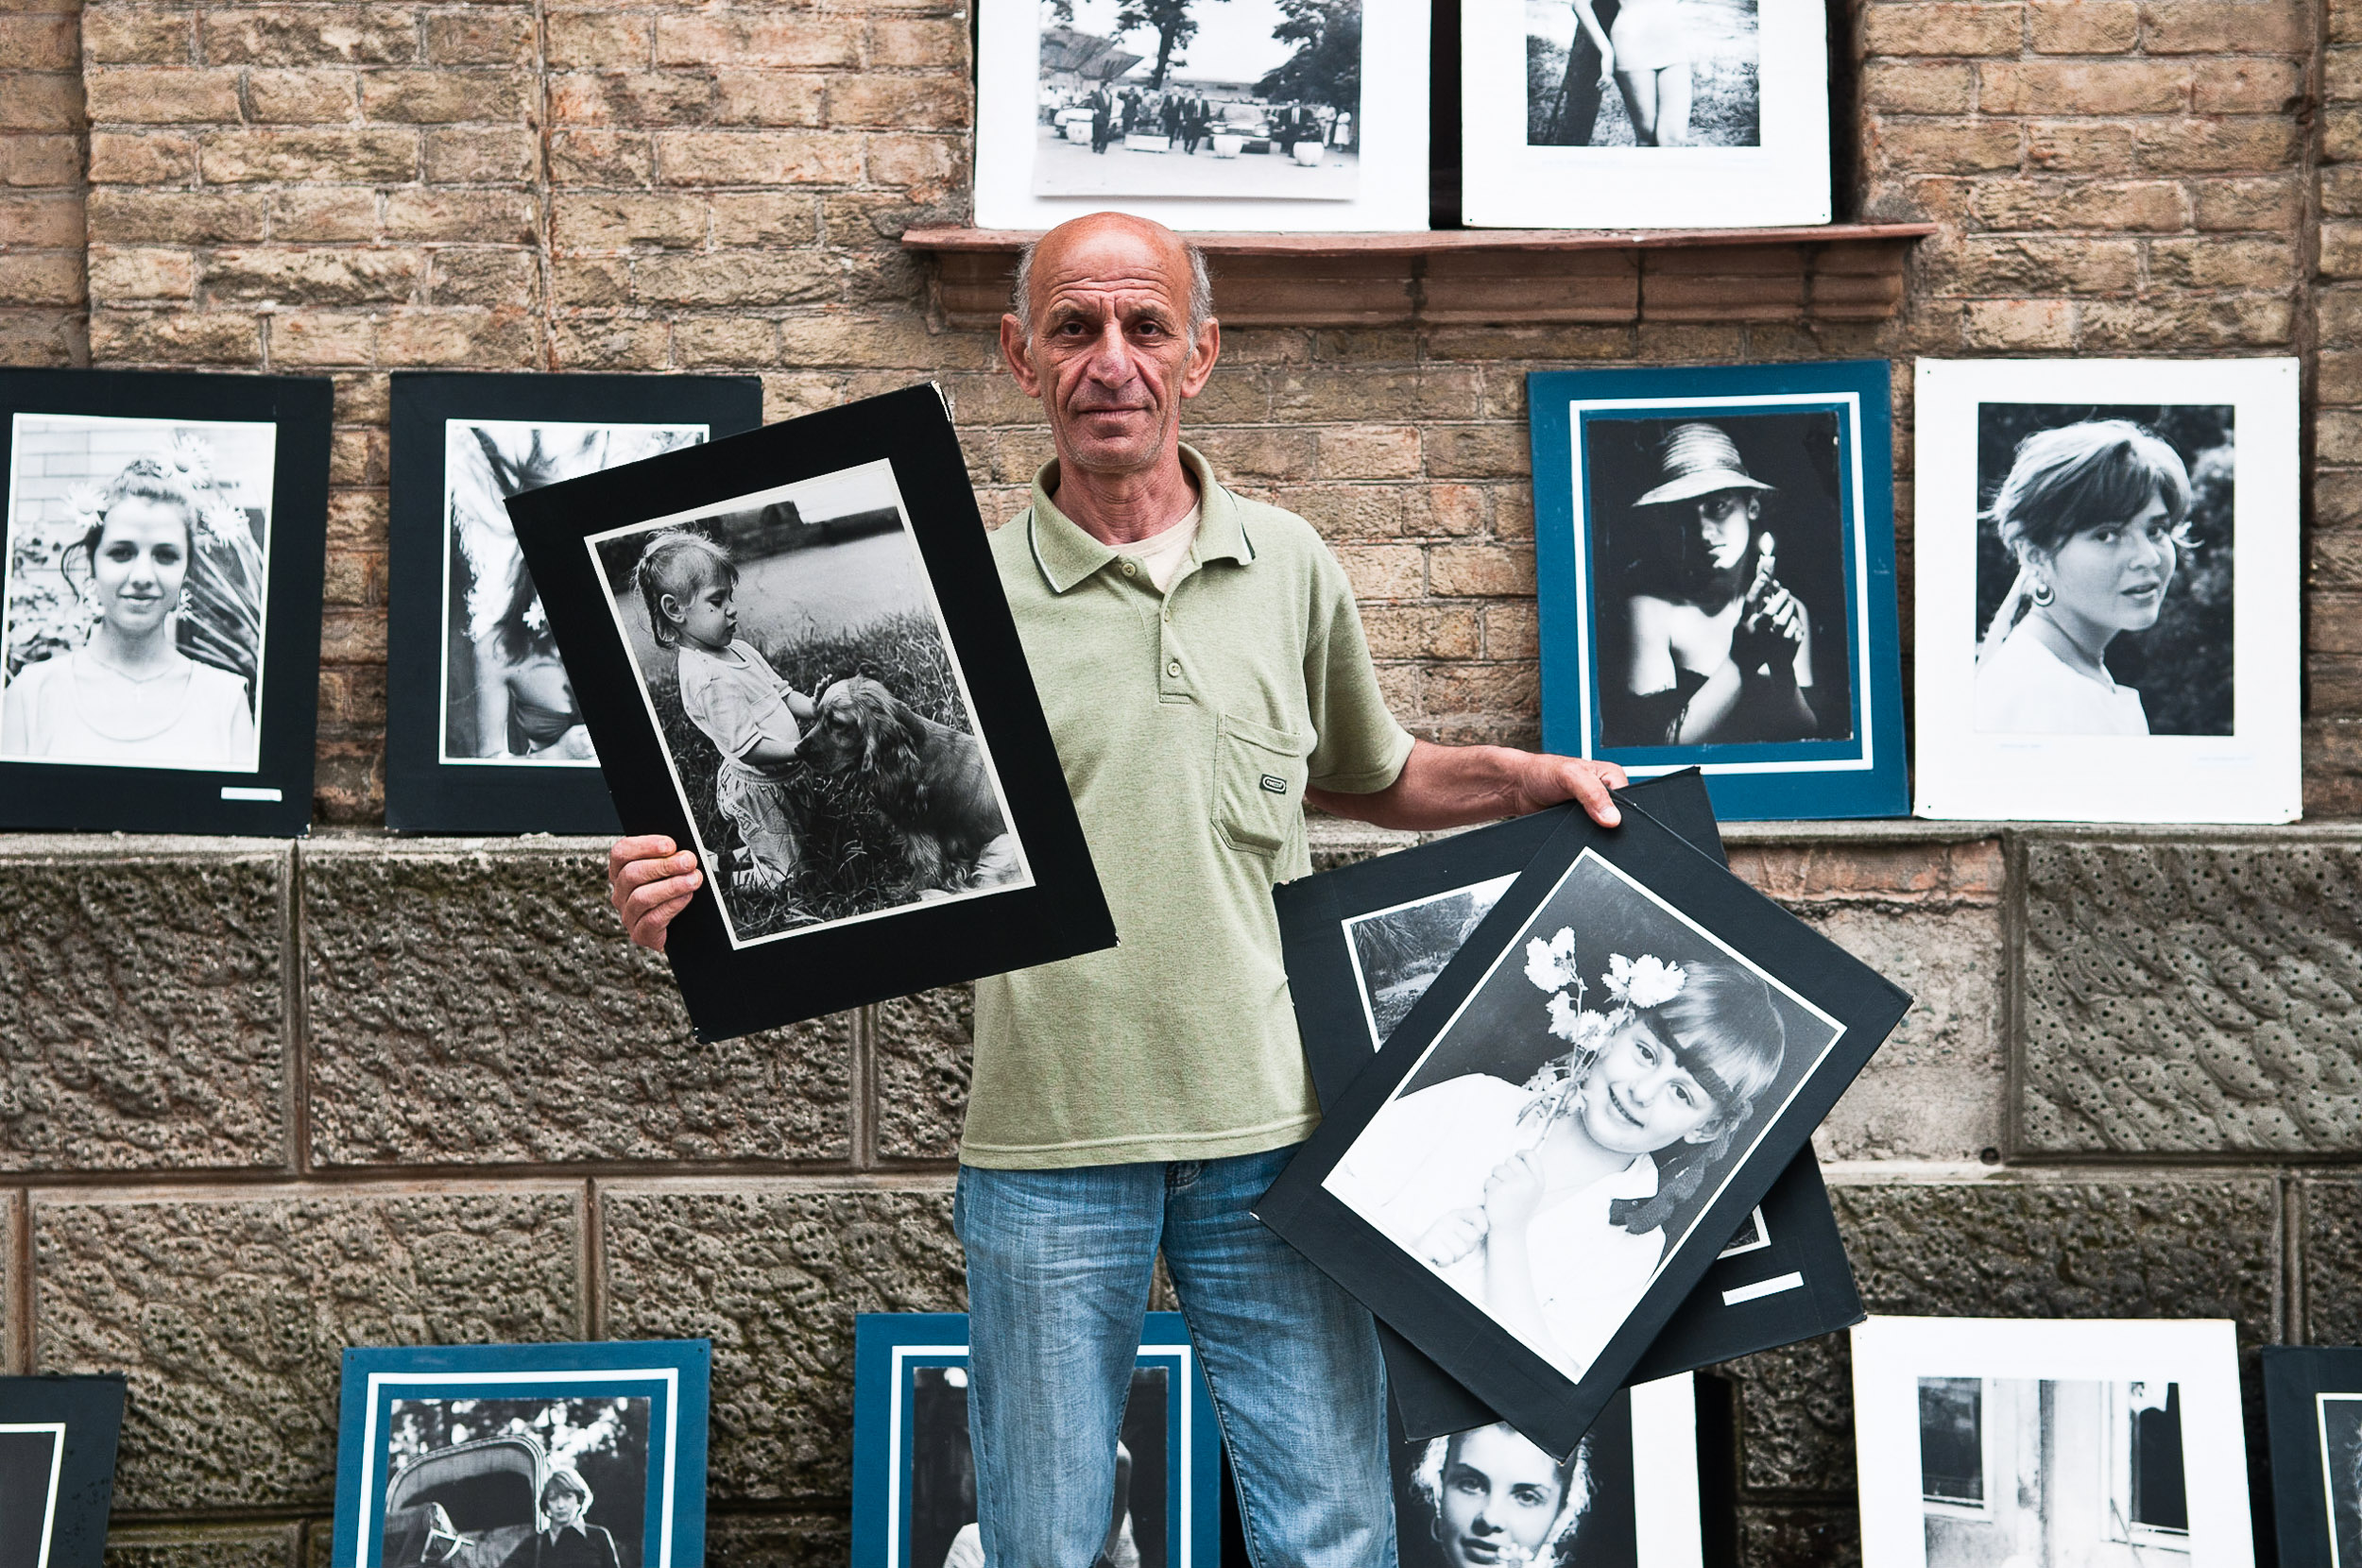 Photographer holding samples of his work, on the streets of Batumi, Georgia, on the 31 May 2012. The photographer set up a display of his photographs on the side walk of the streets of Batumi and was selling prints for $5 USD a piece.